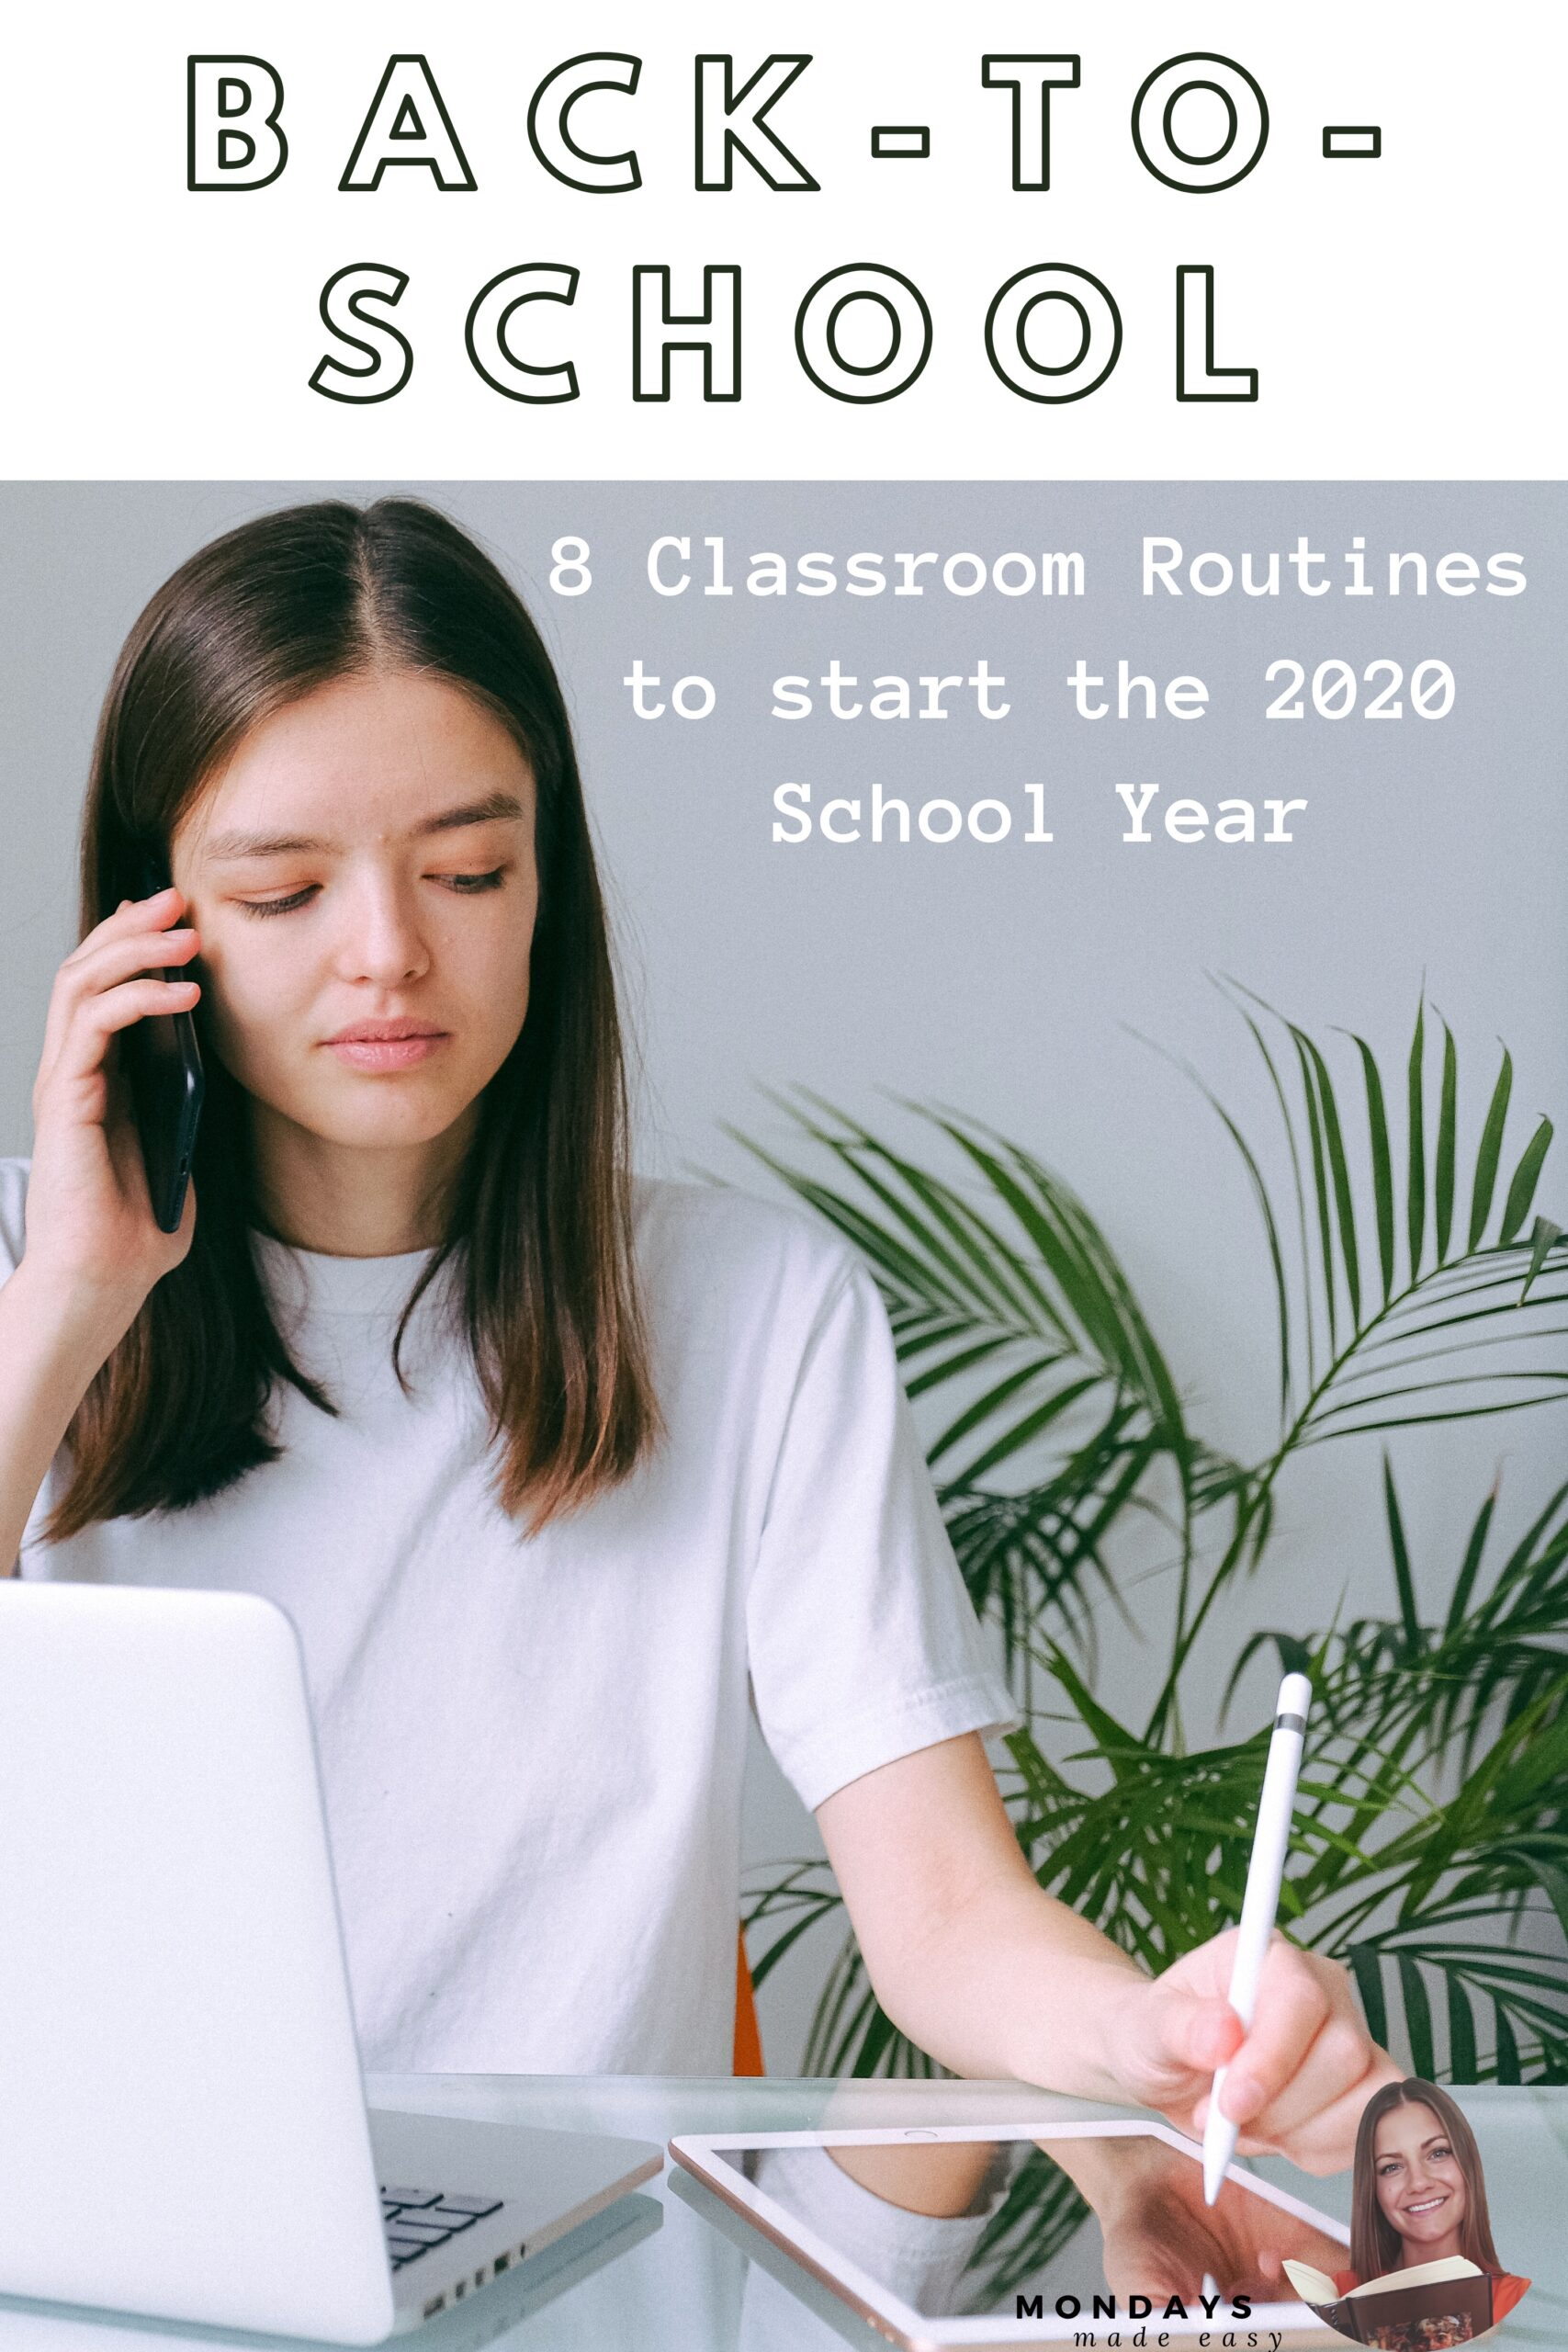 2020 new school year routines and procedures for back to school